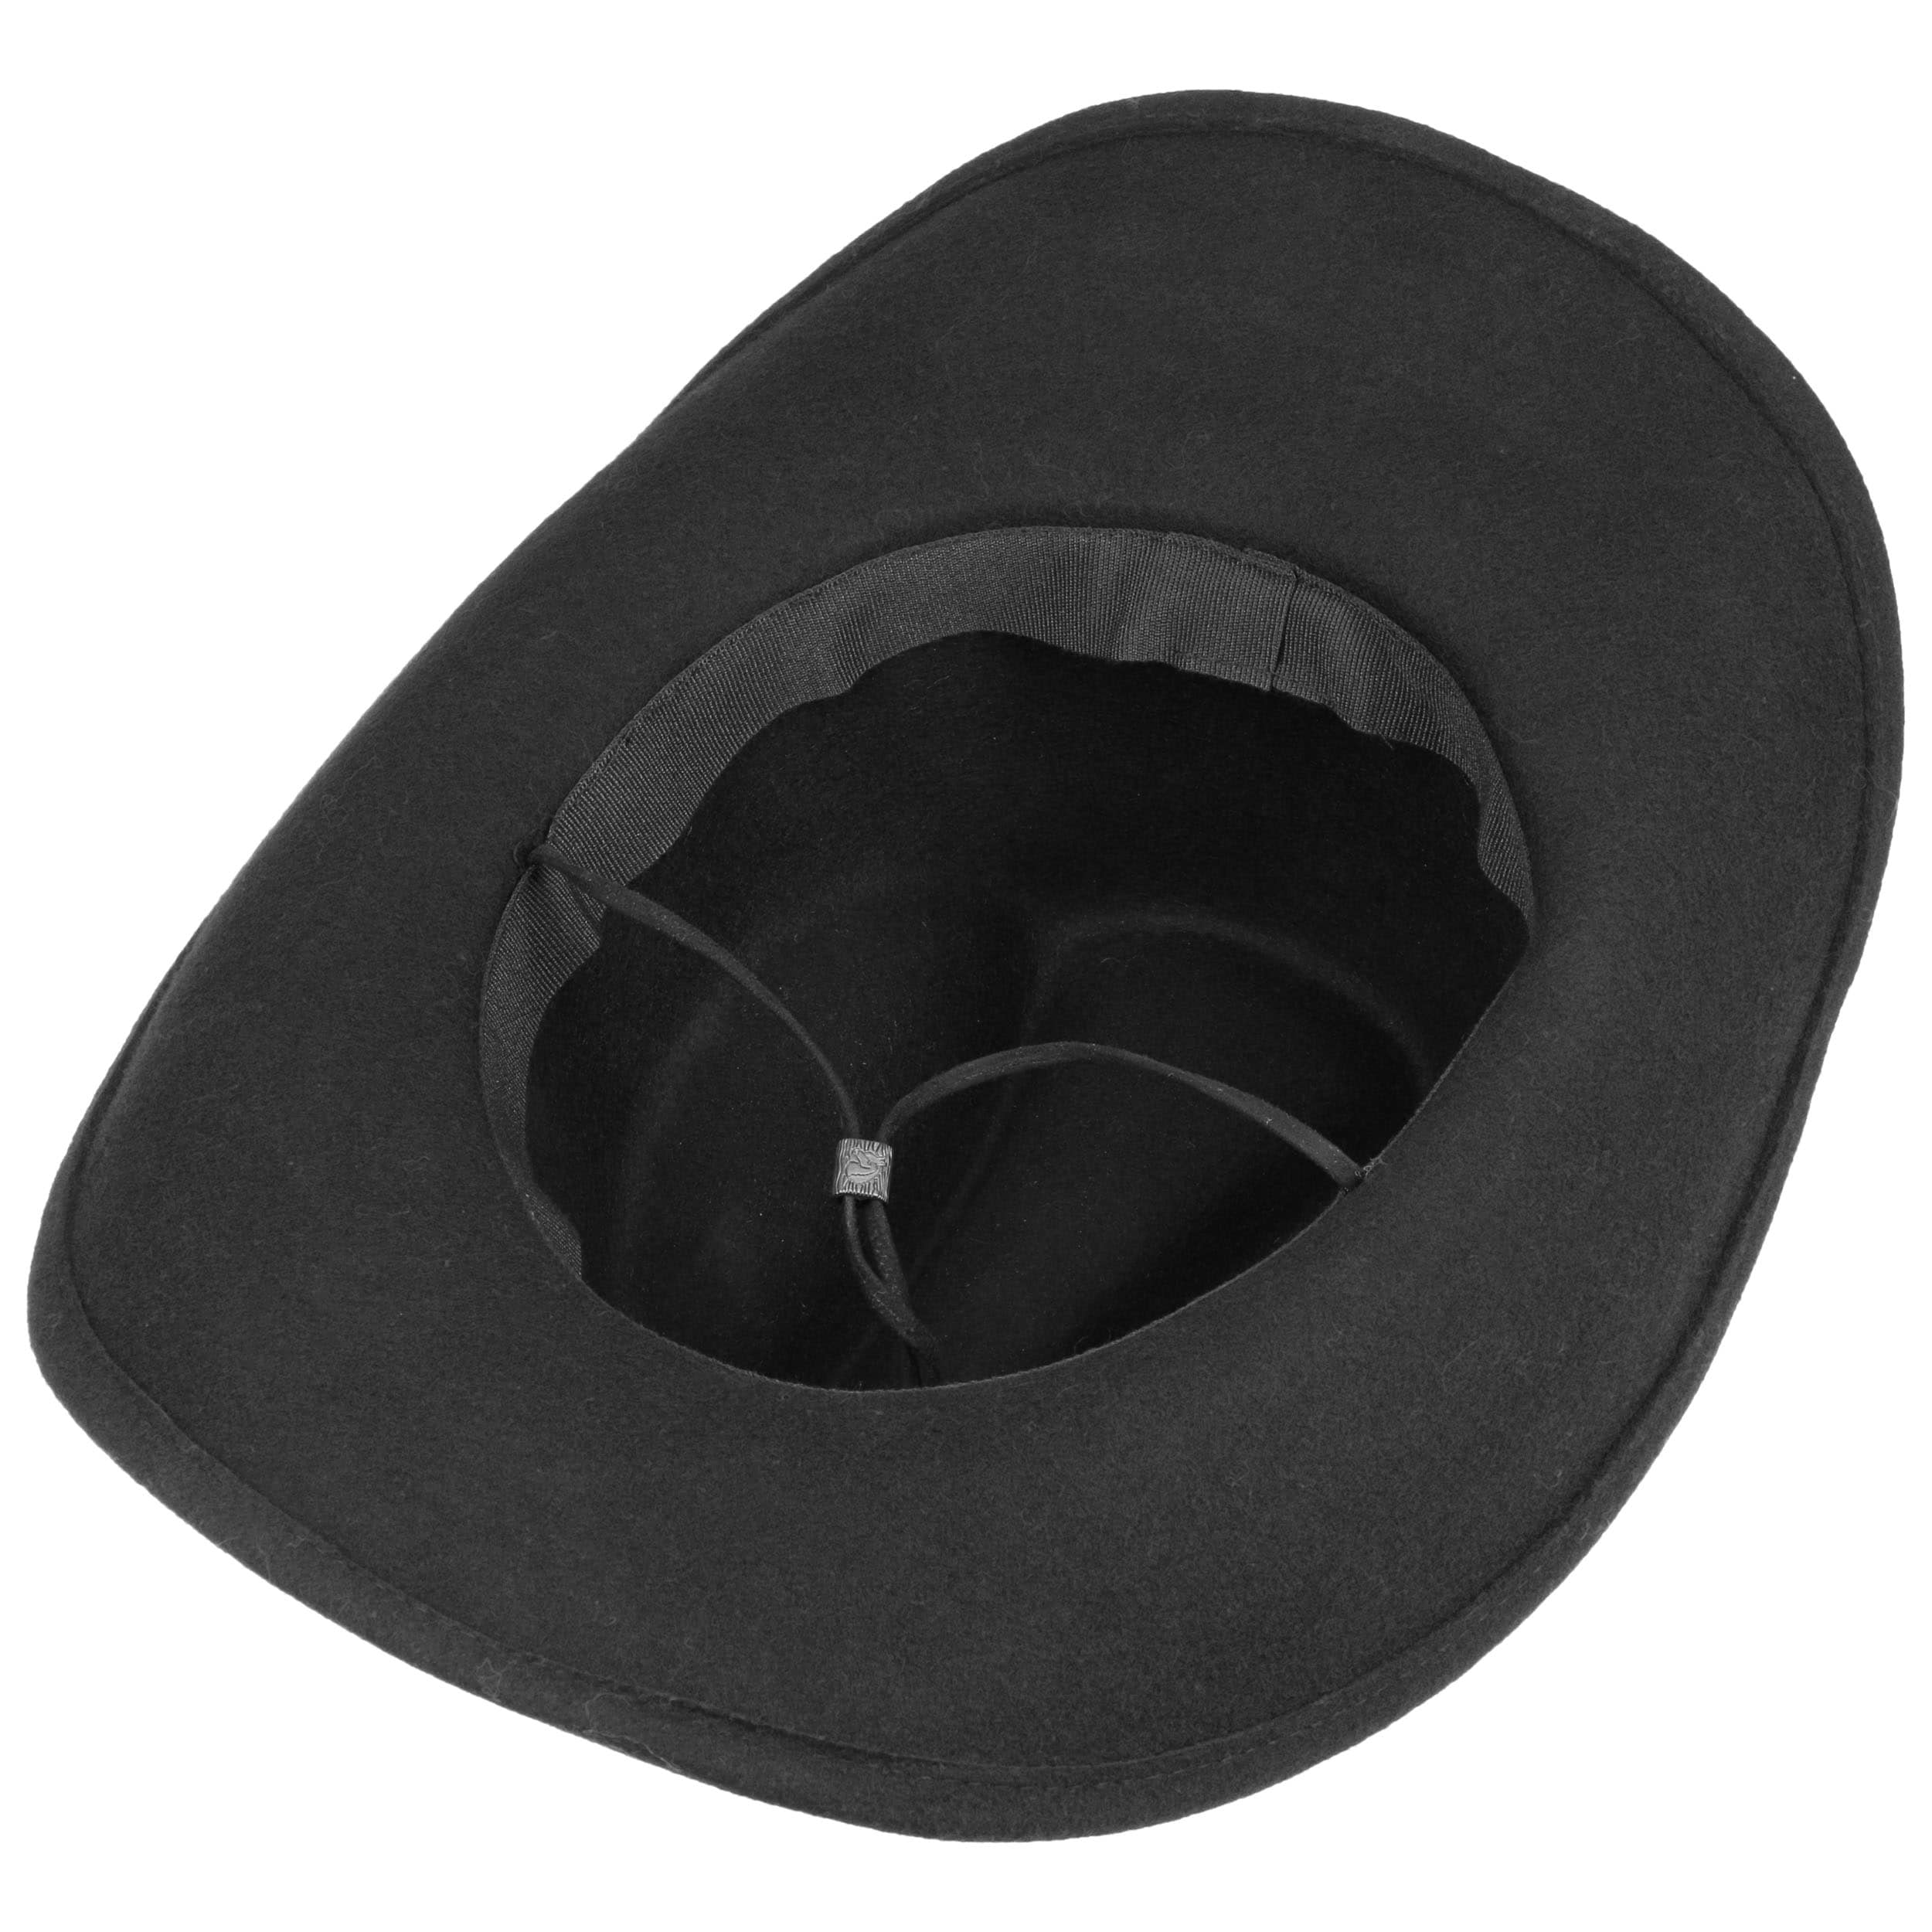 61b00396148 ... Bill Cody Western Hat with Chin Strap by Lipodo - black 2 ...